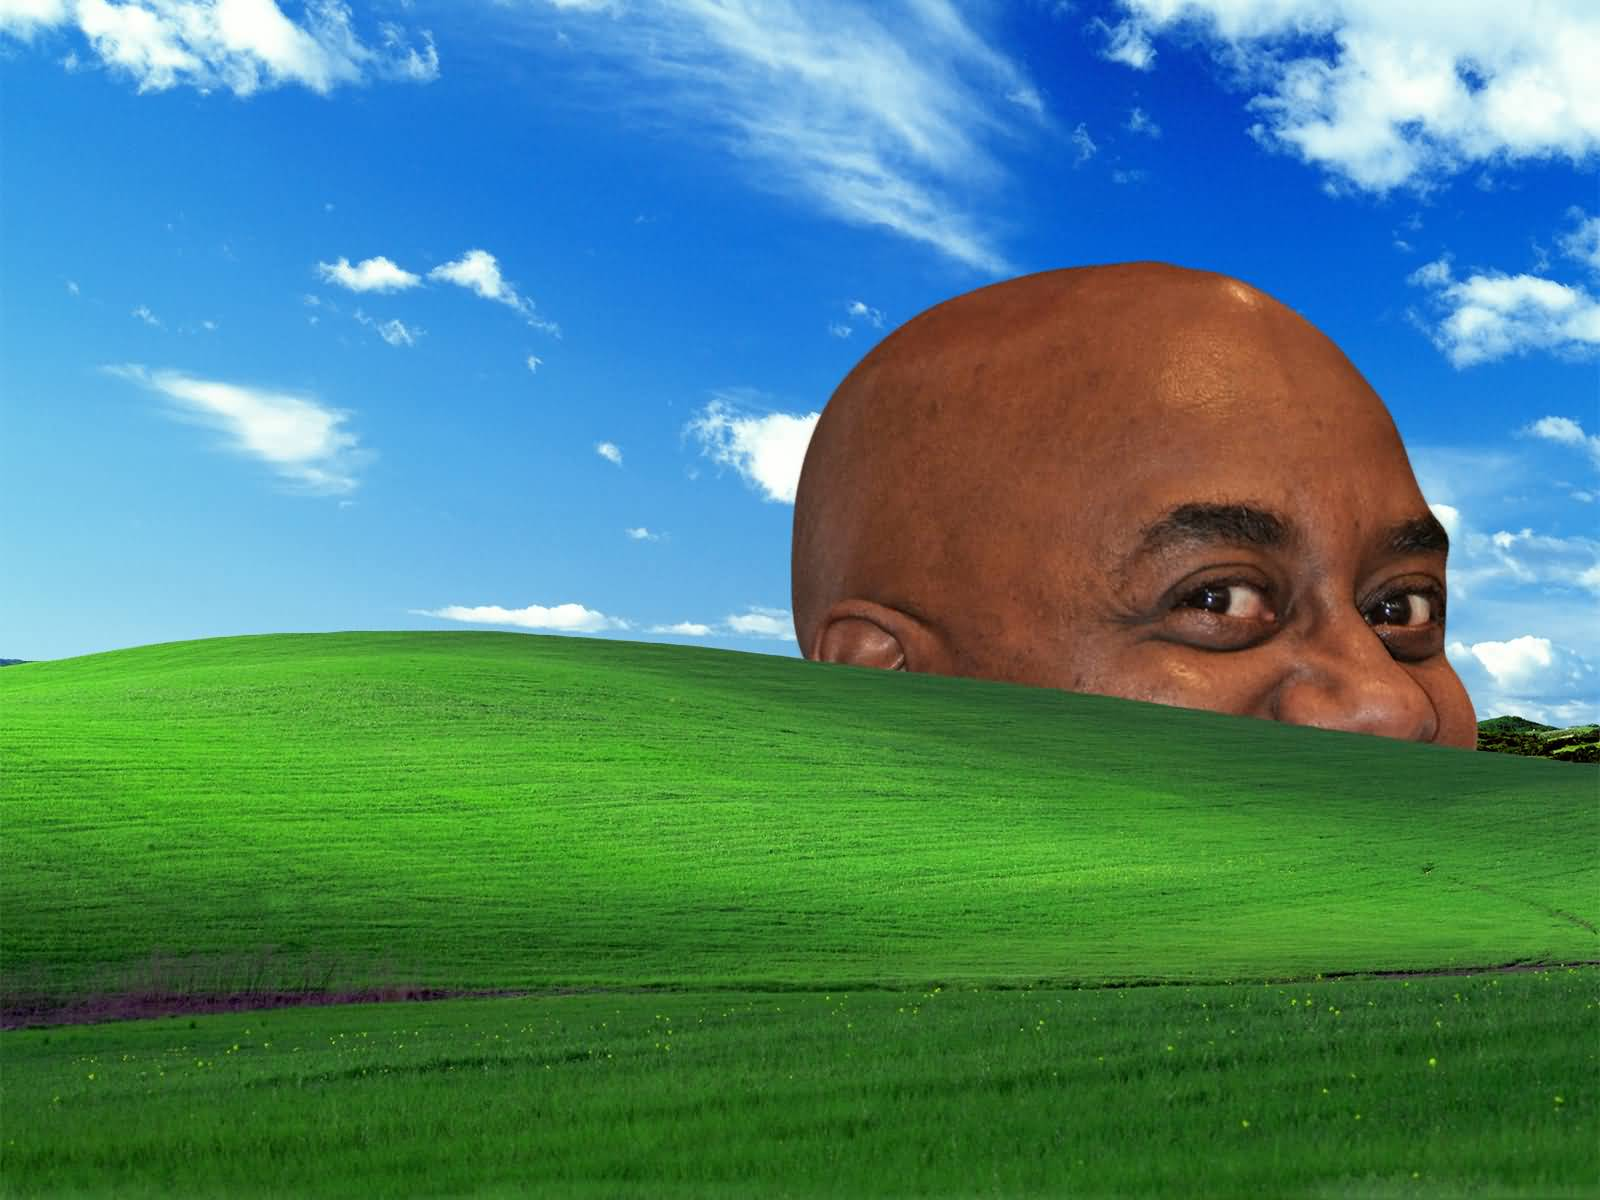 Windows Xp Meme Image Joke 11